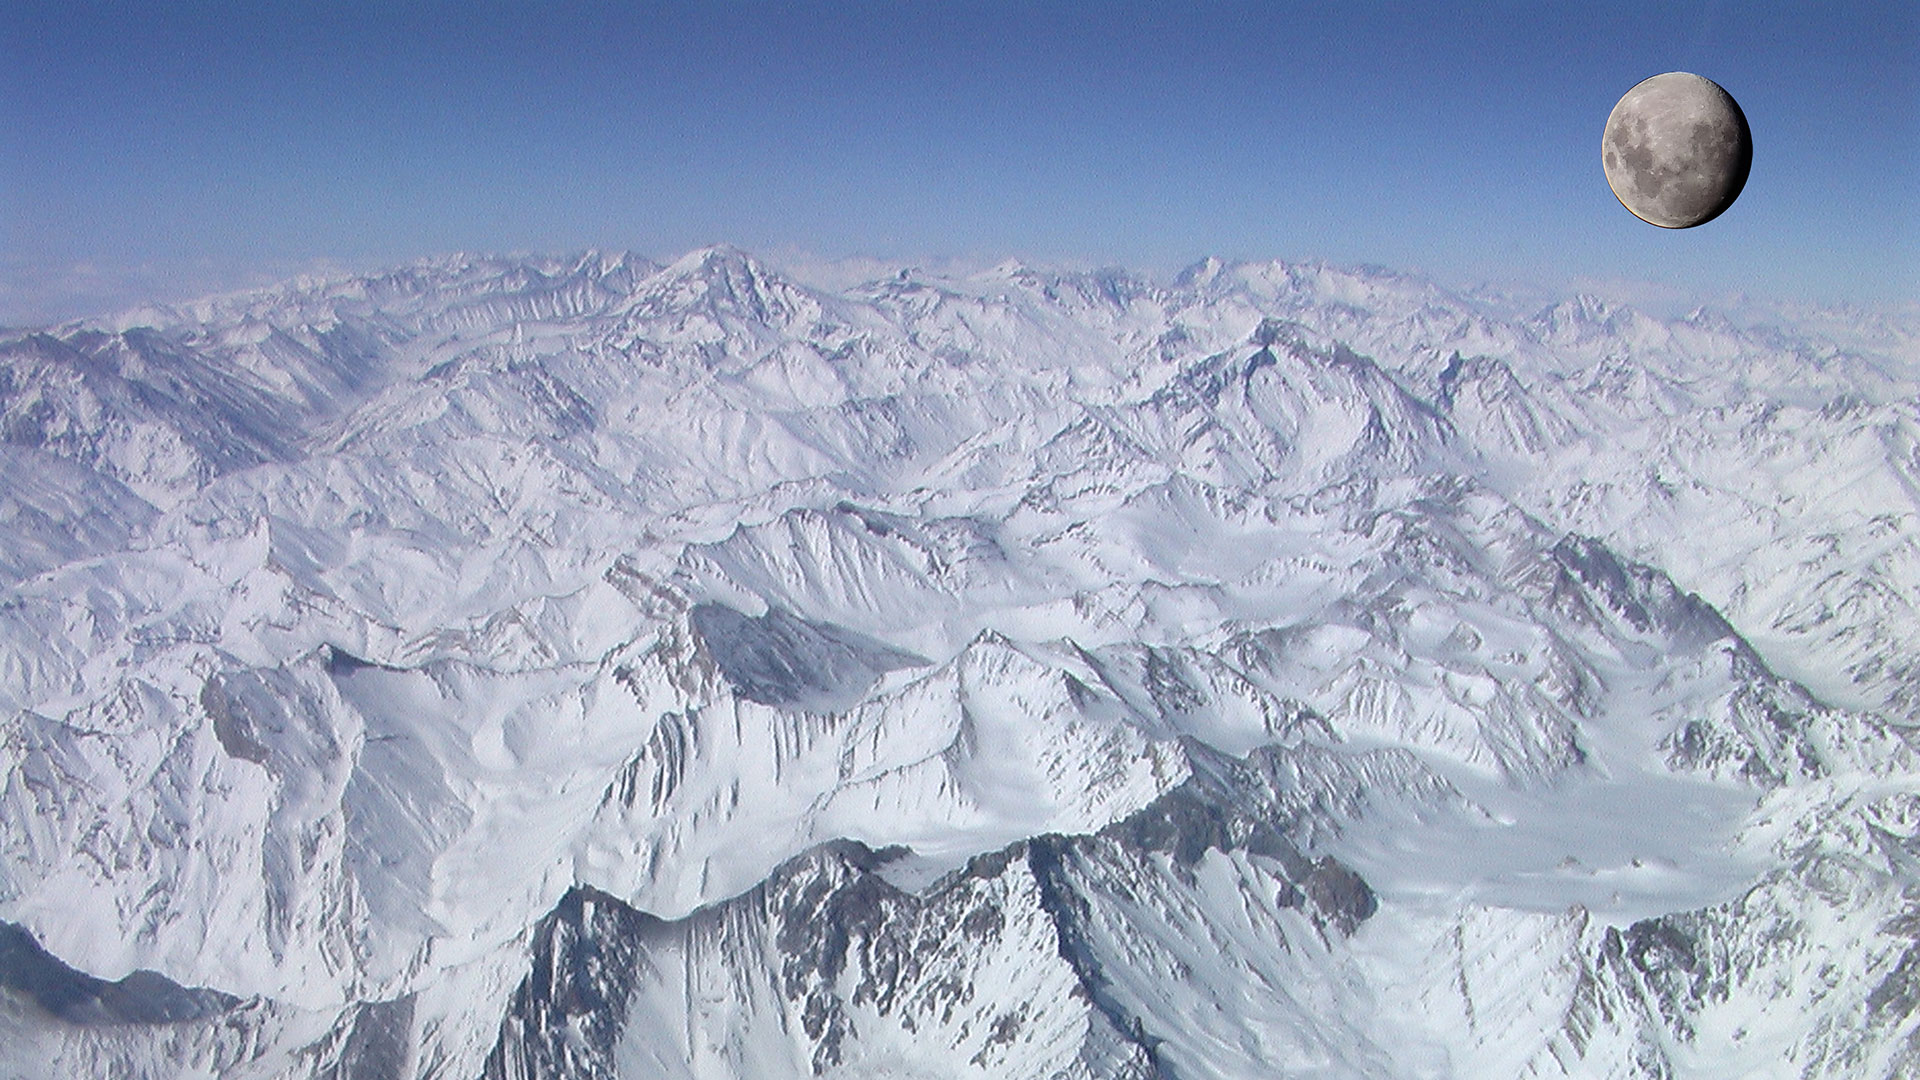 Andes Mountains - South America